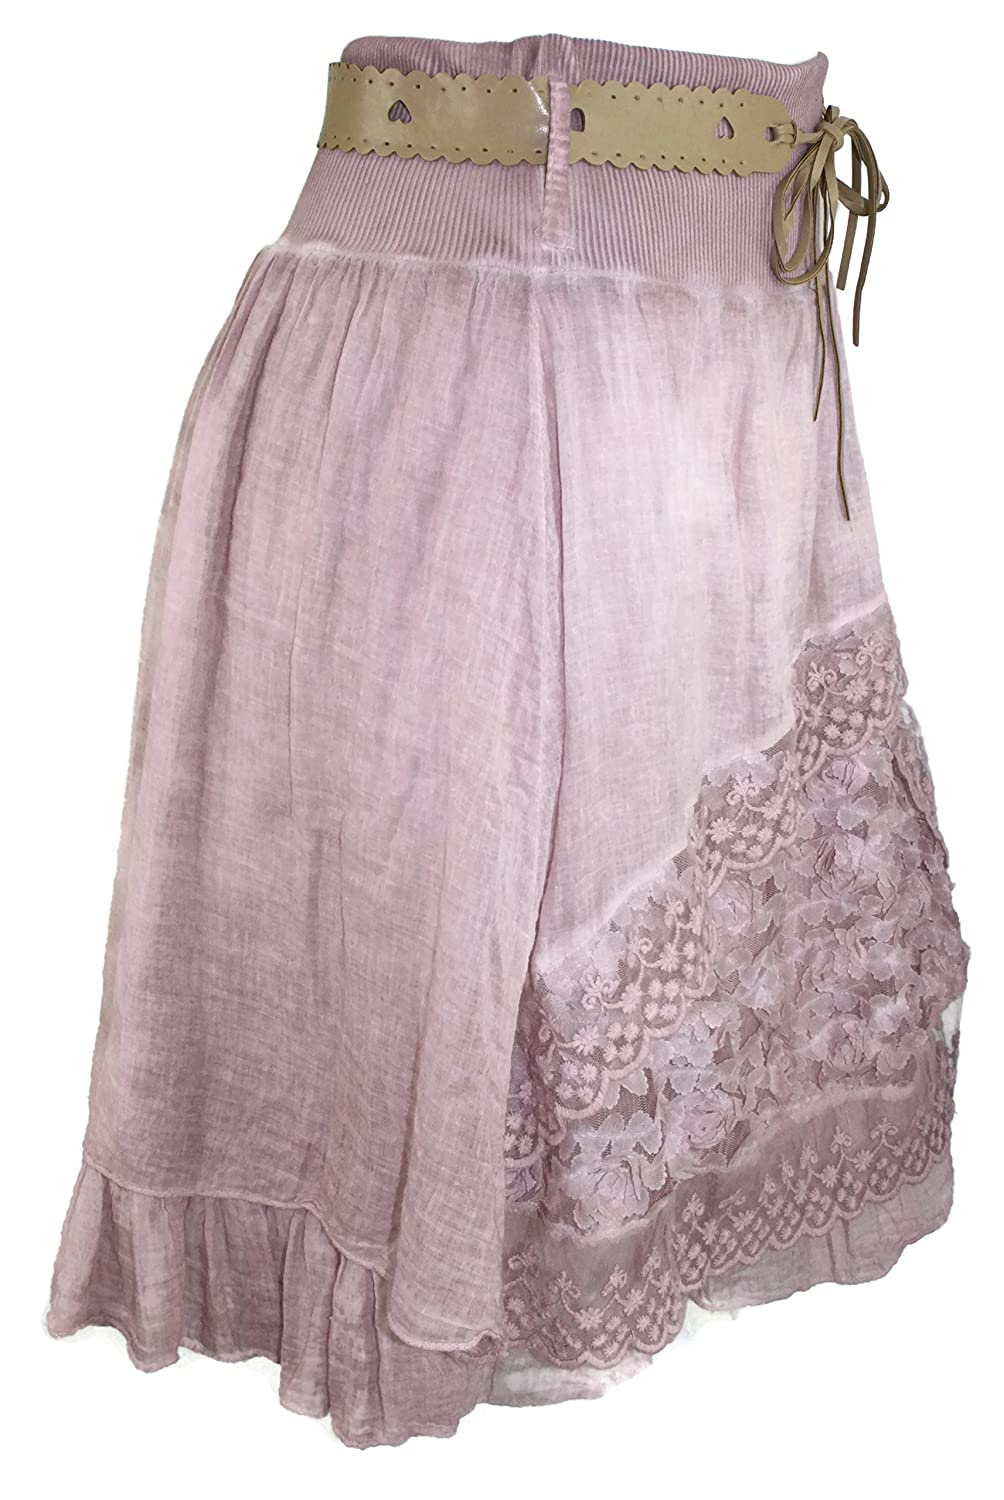 #786 Women's Batik Rock with Lace Skirt Midi Turquoise / Pink / Grey One Size 36 38 40